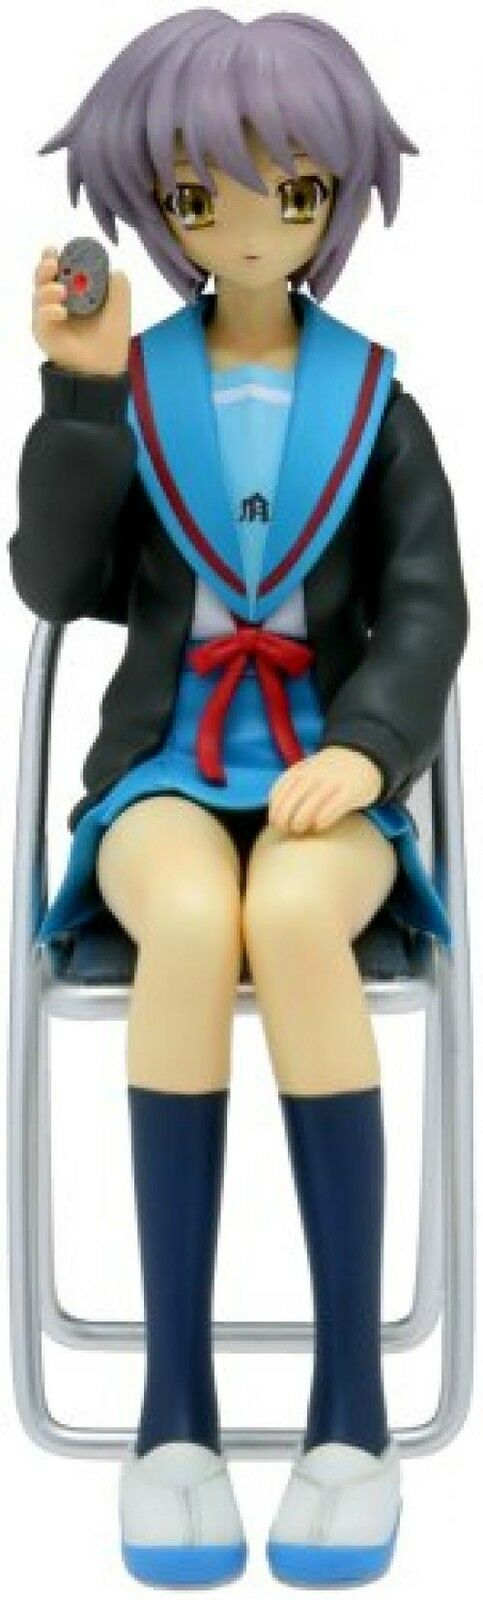 Nuevo Nagato Yuki School Uniform Ver. 1 10 escala Amazon. Co. JP Edición Limitada F S